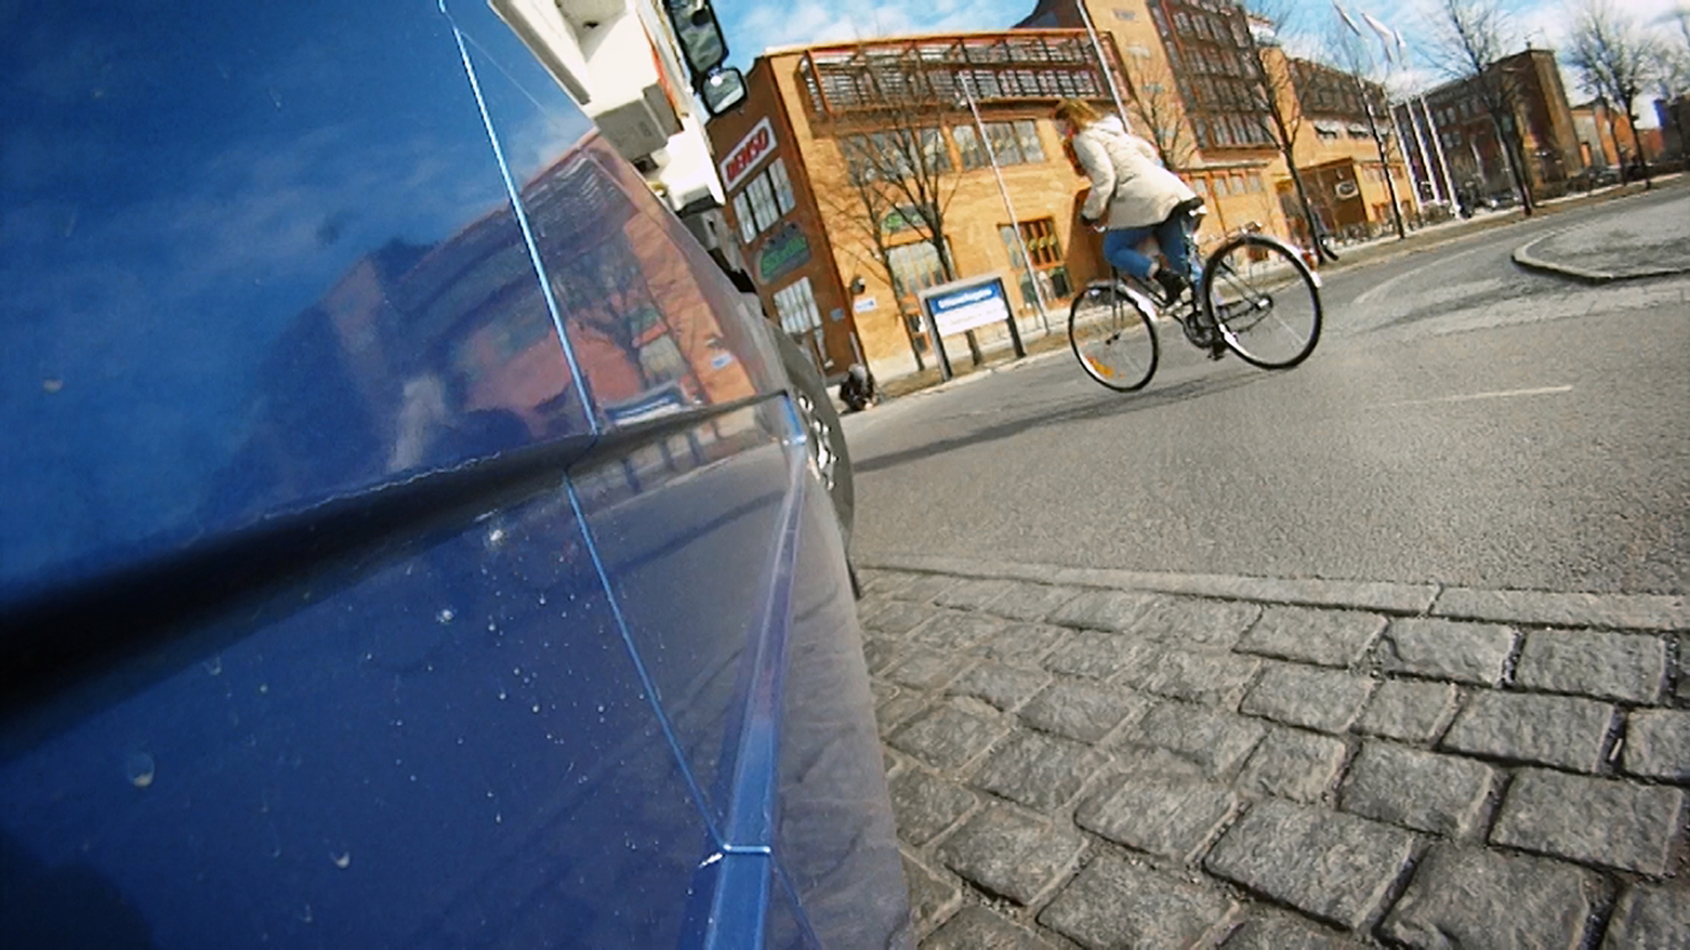 Volvo truck with cyclist detection